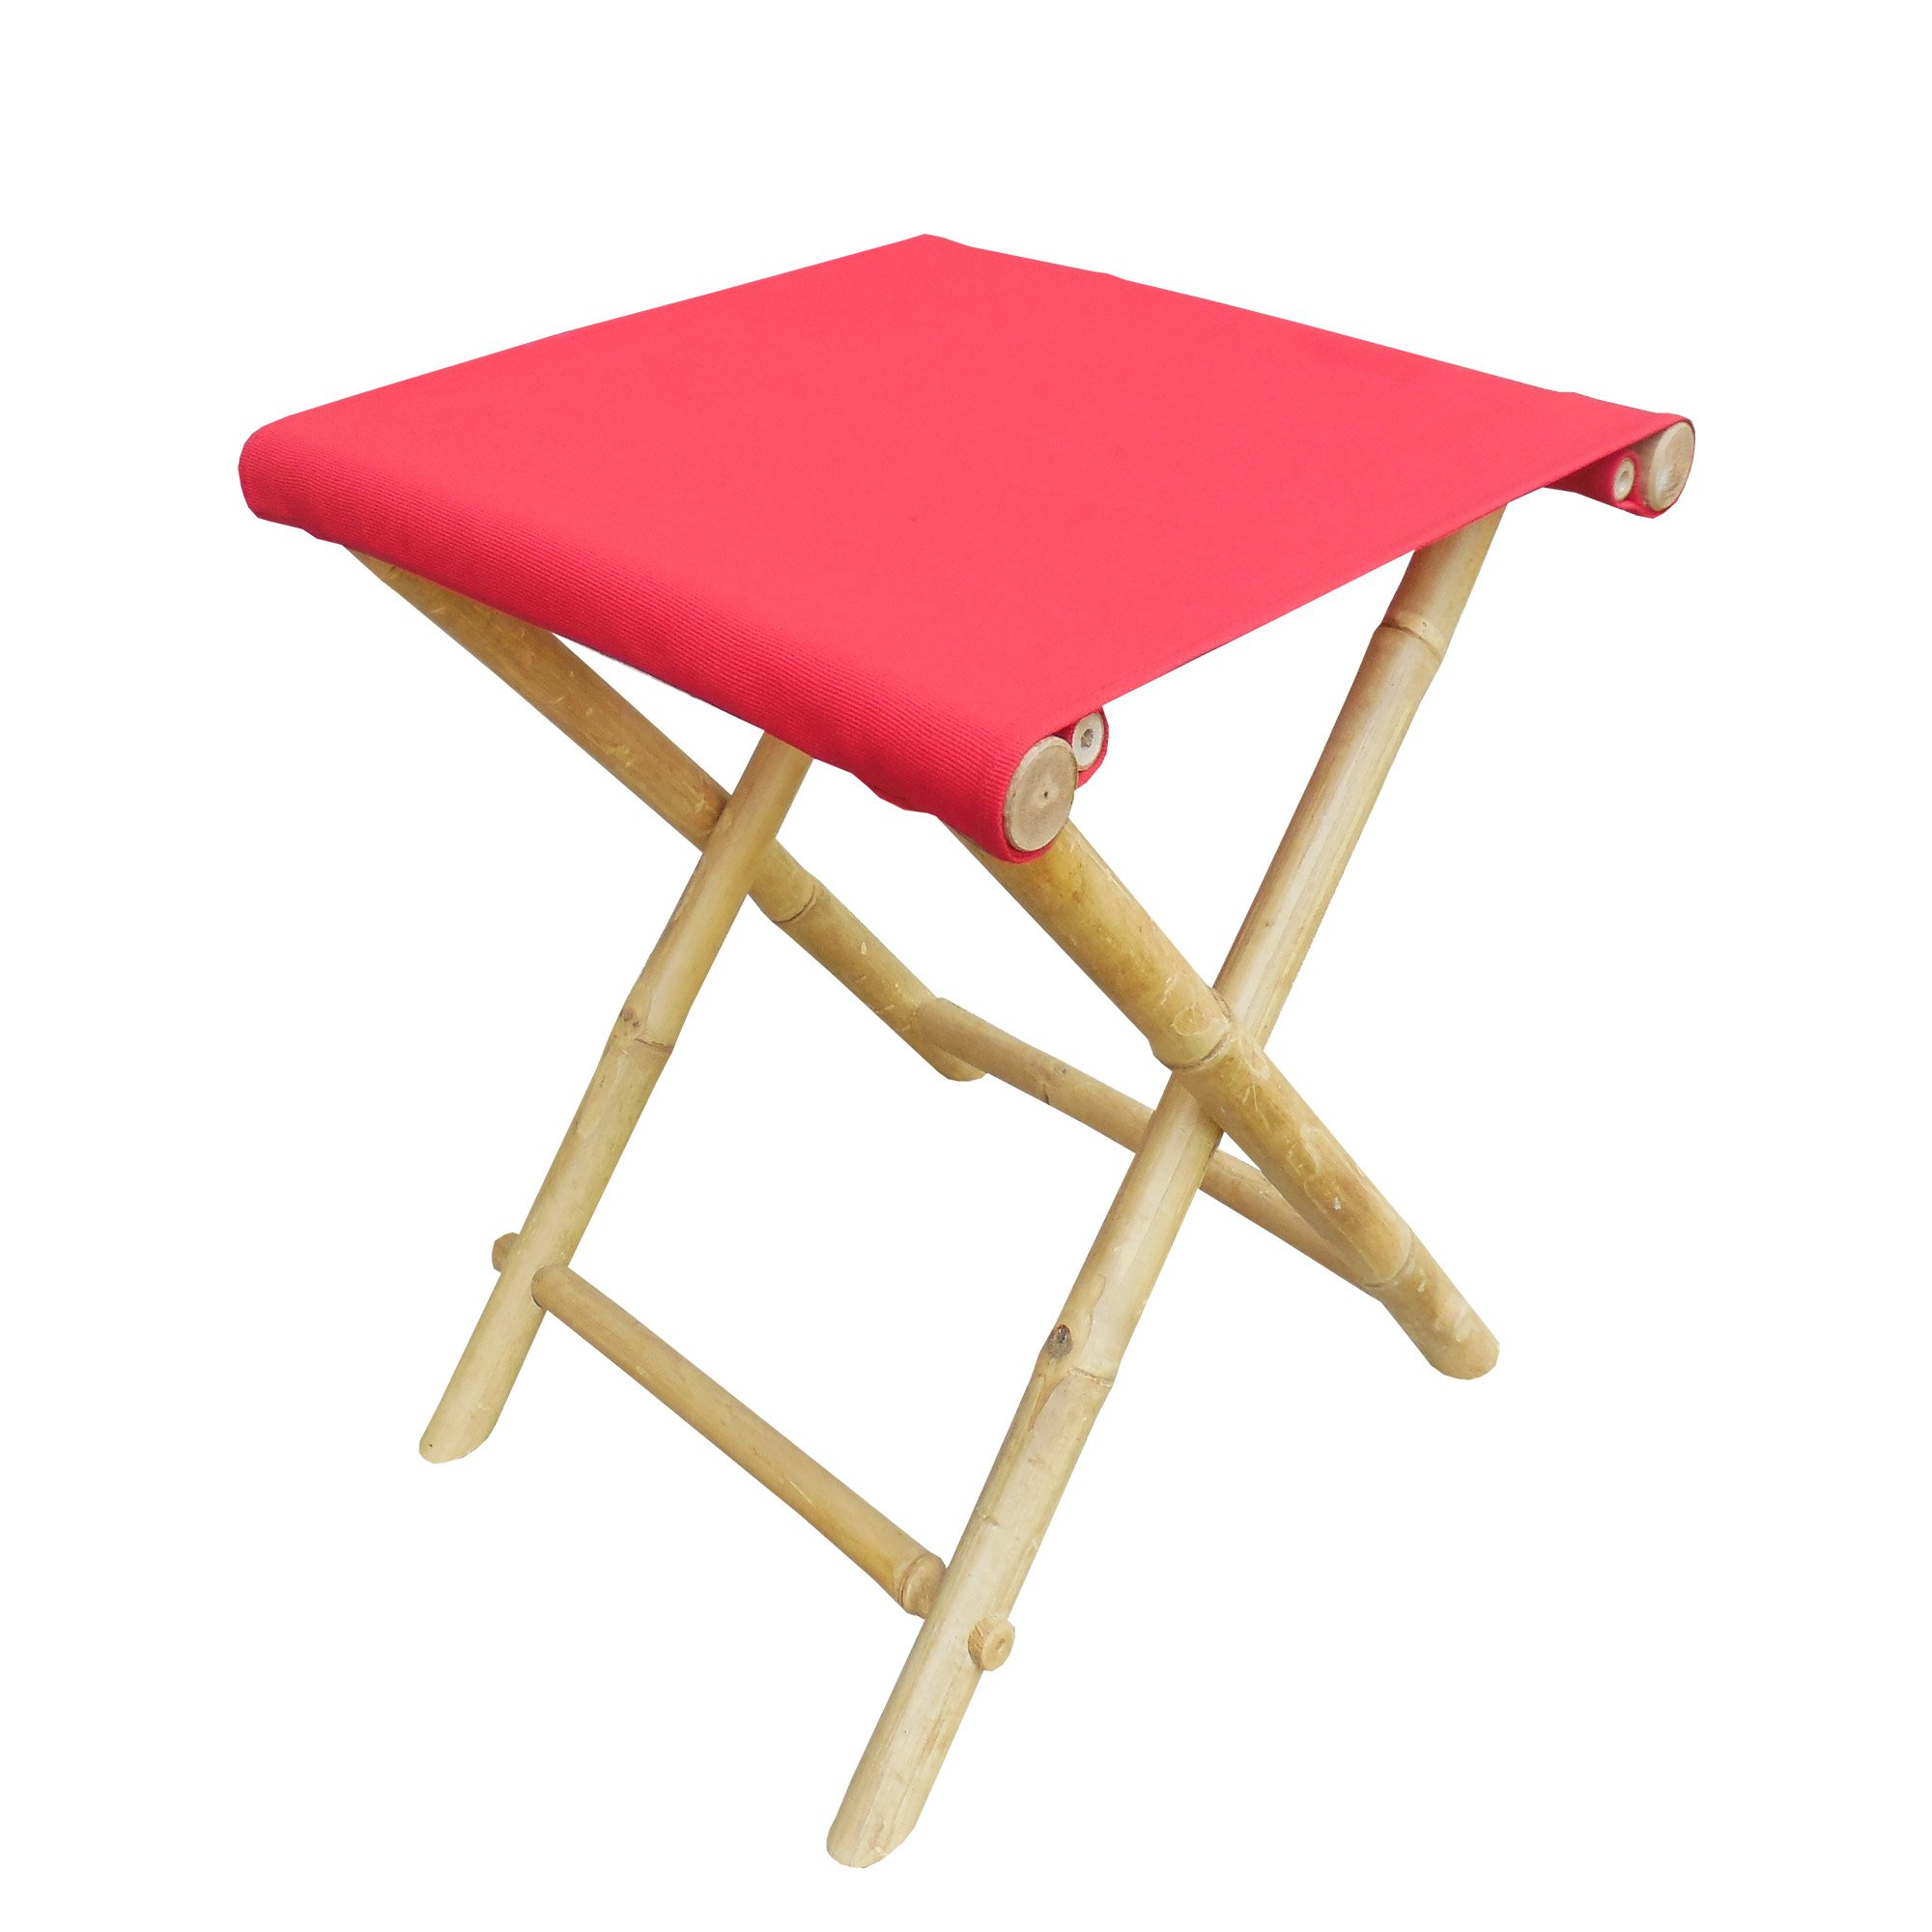 Zew CH-191-0-08 Foldable Stool, Red